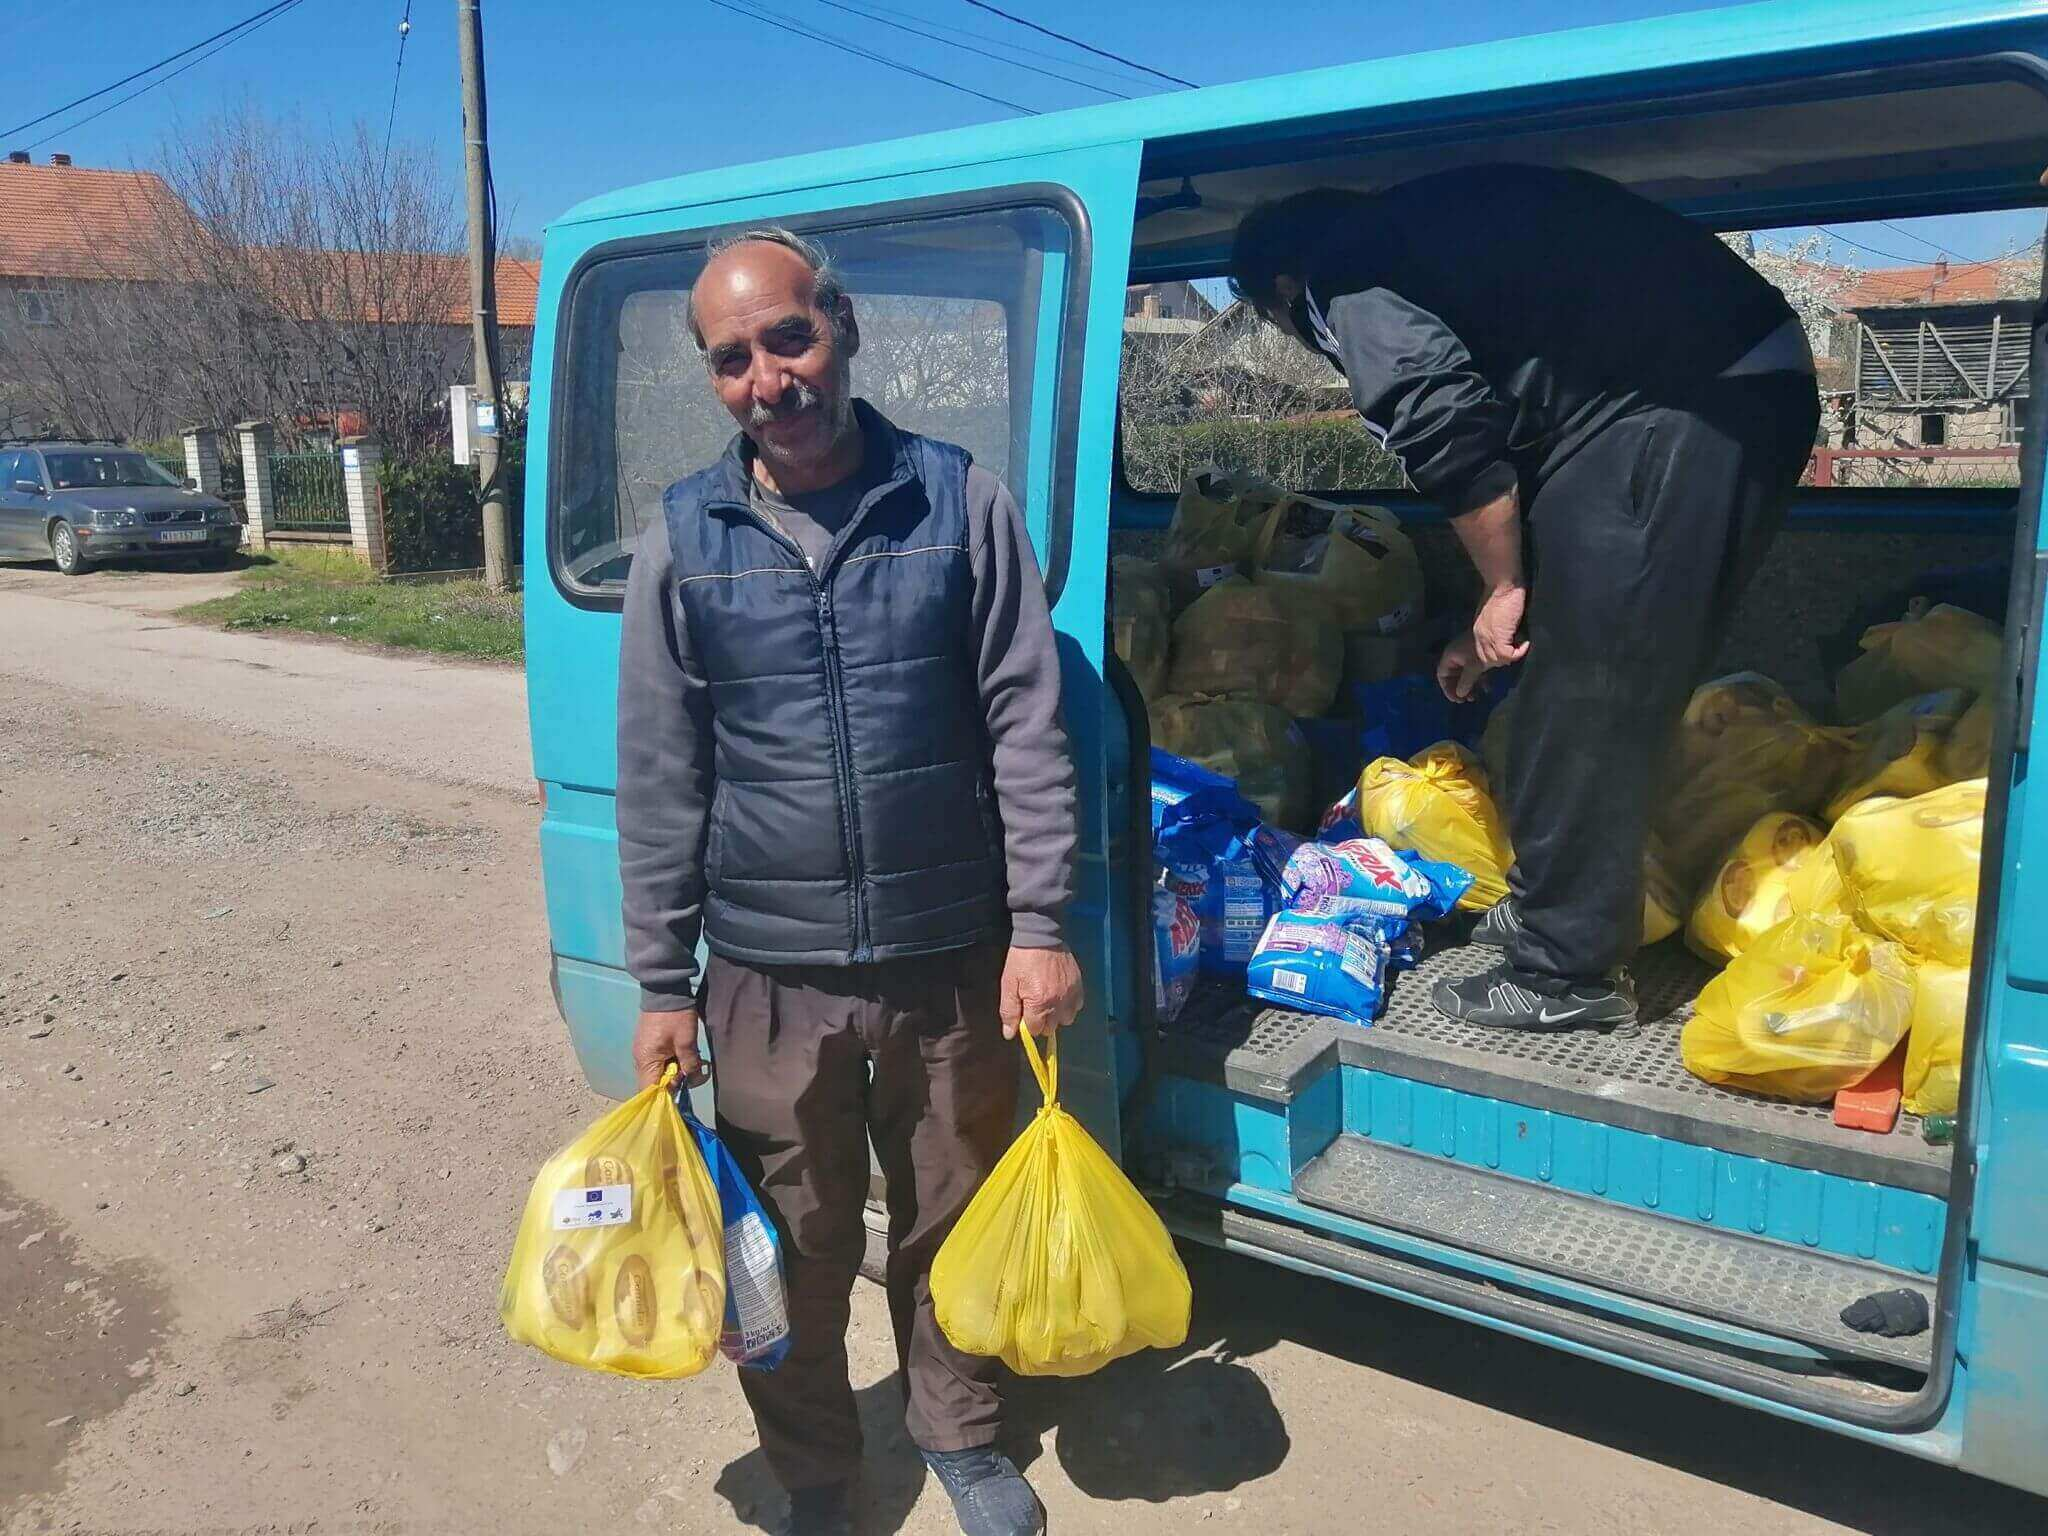 Donation of 40 packages of food and hygiene products to the most vulnerable Roma families